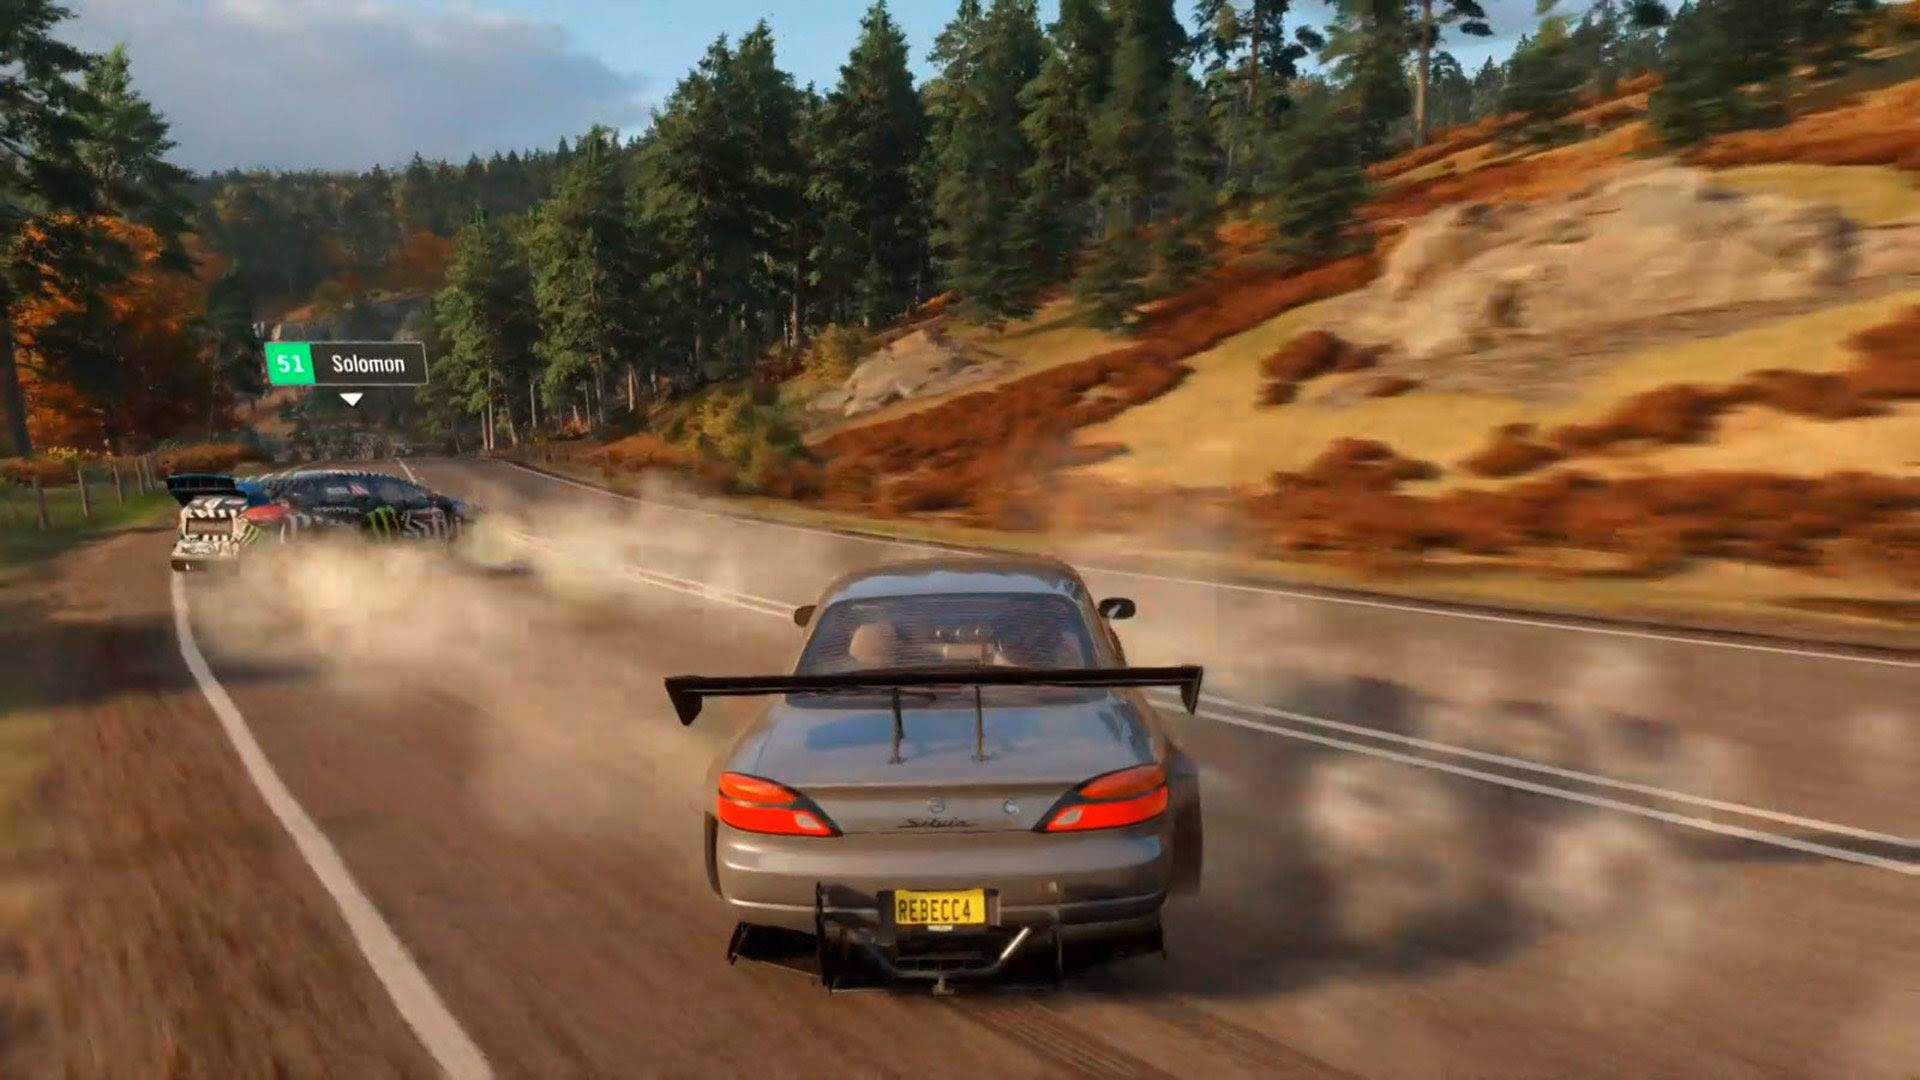 Forza Horizon 4 announced, set in the UK with 60fps! screenshot